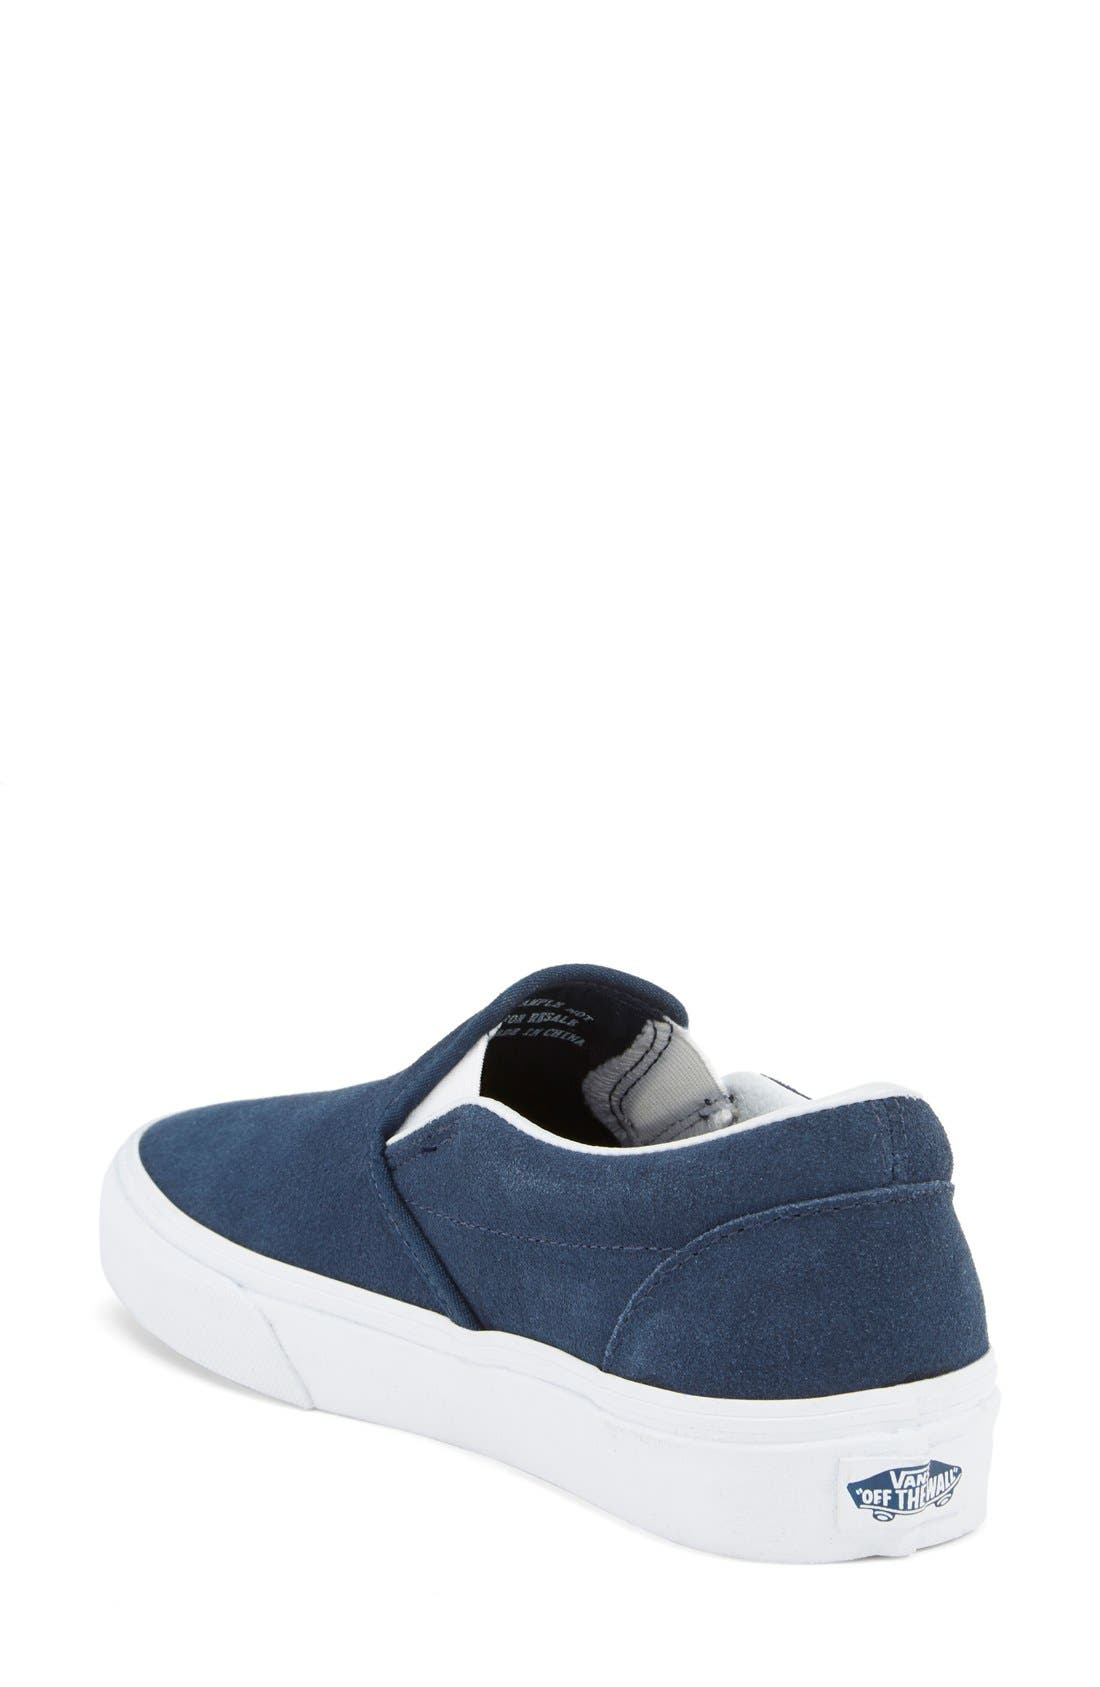 Alternate Image 2  - Vans Suede Slip-On Sneaker (Women)